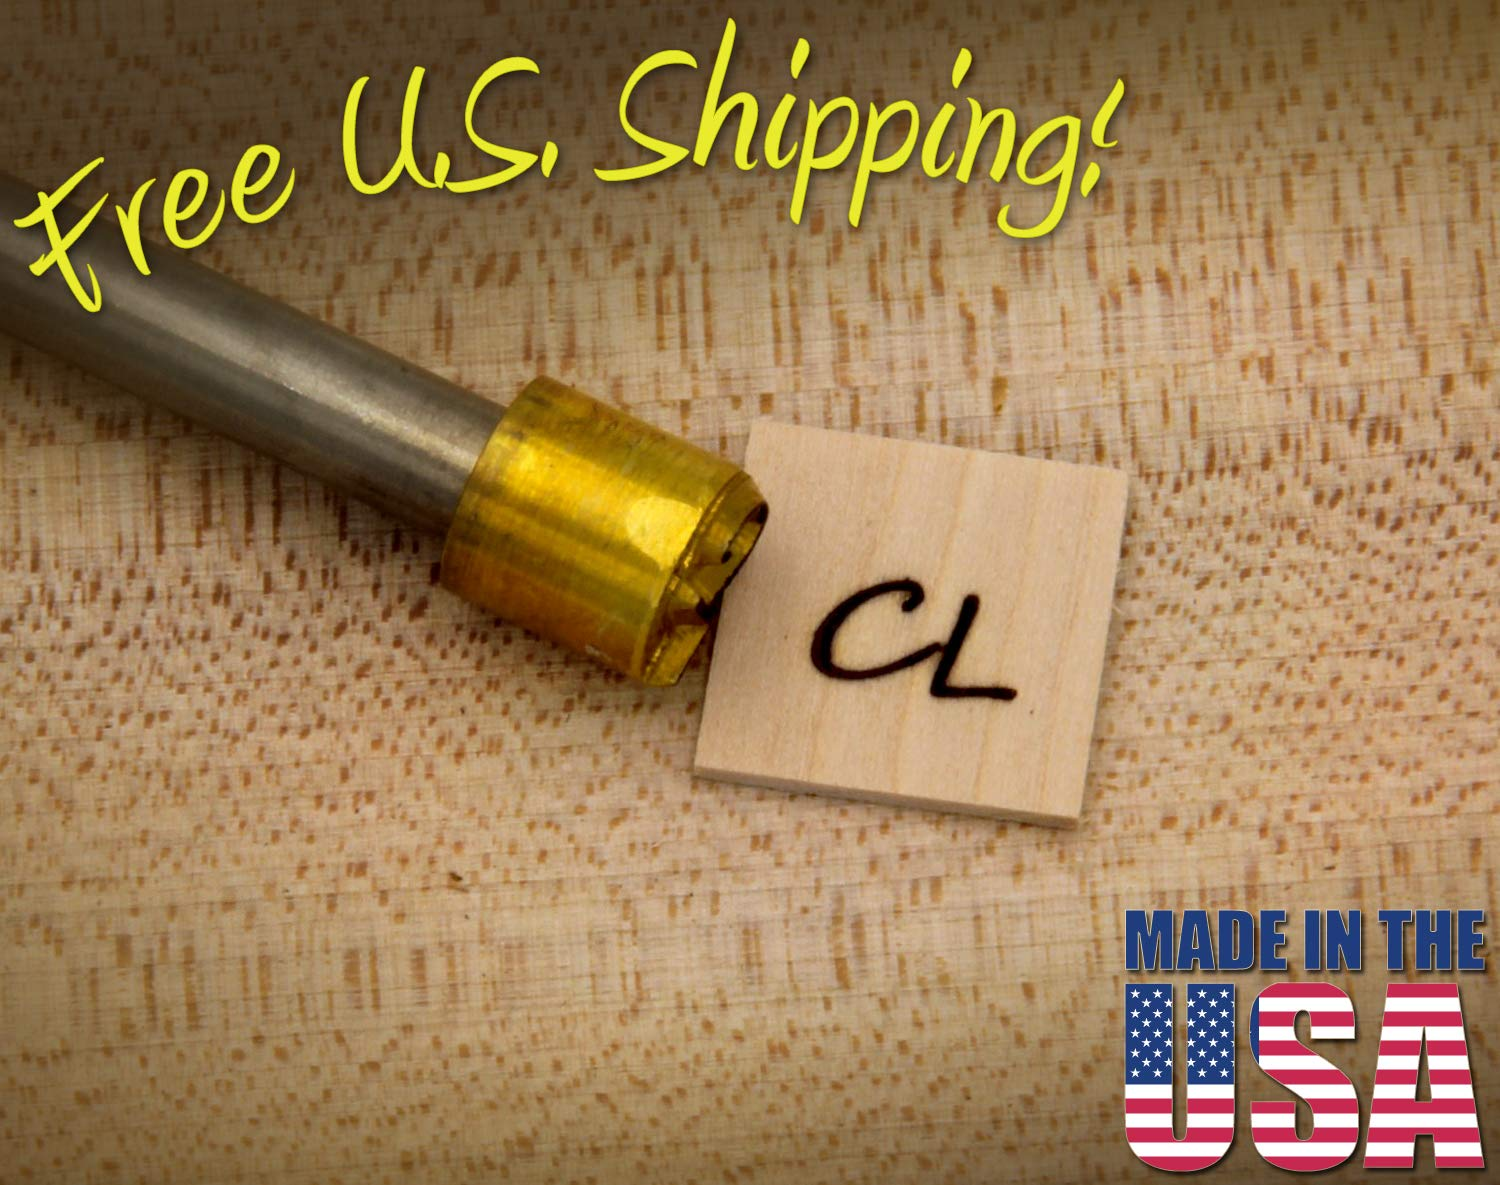 Personalized Text Custom Branding Iron (0.5'' Round Initials) by Beamer's Brands (Image #1)